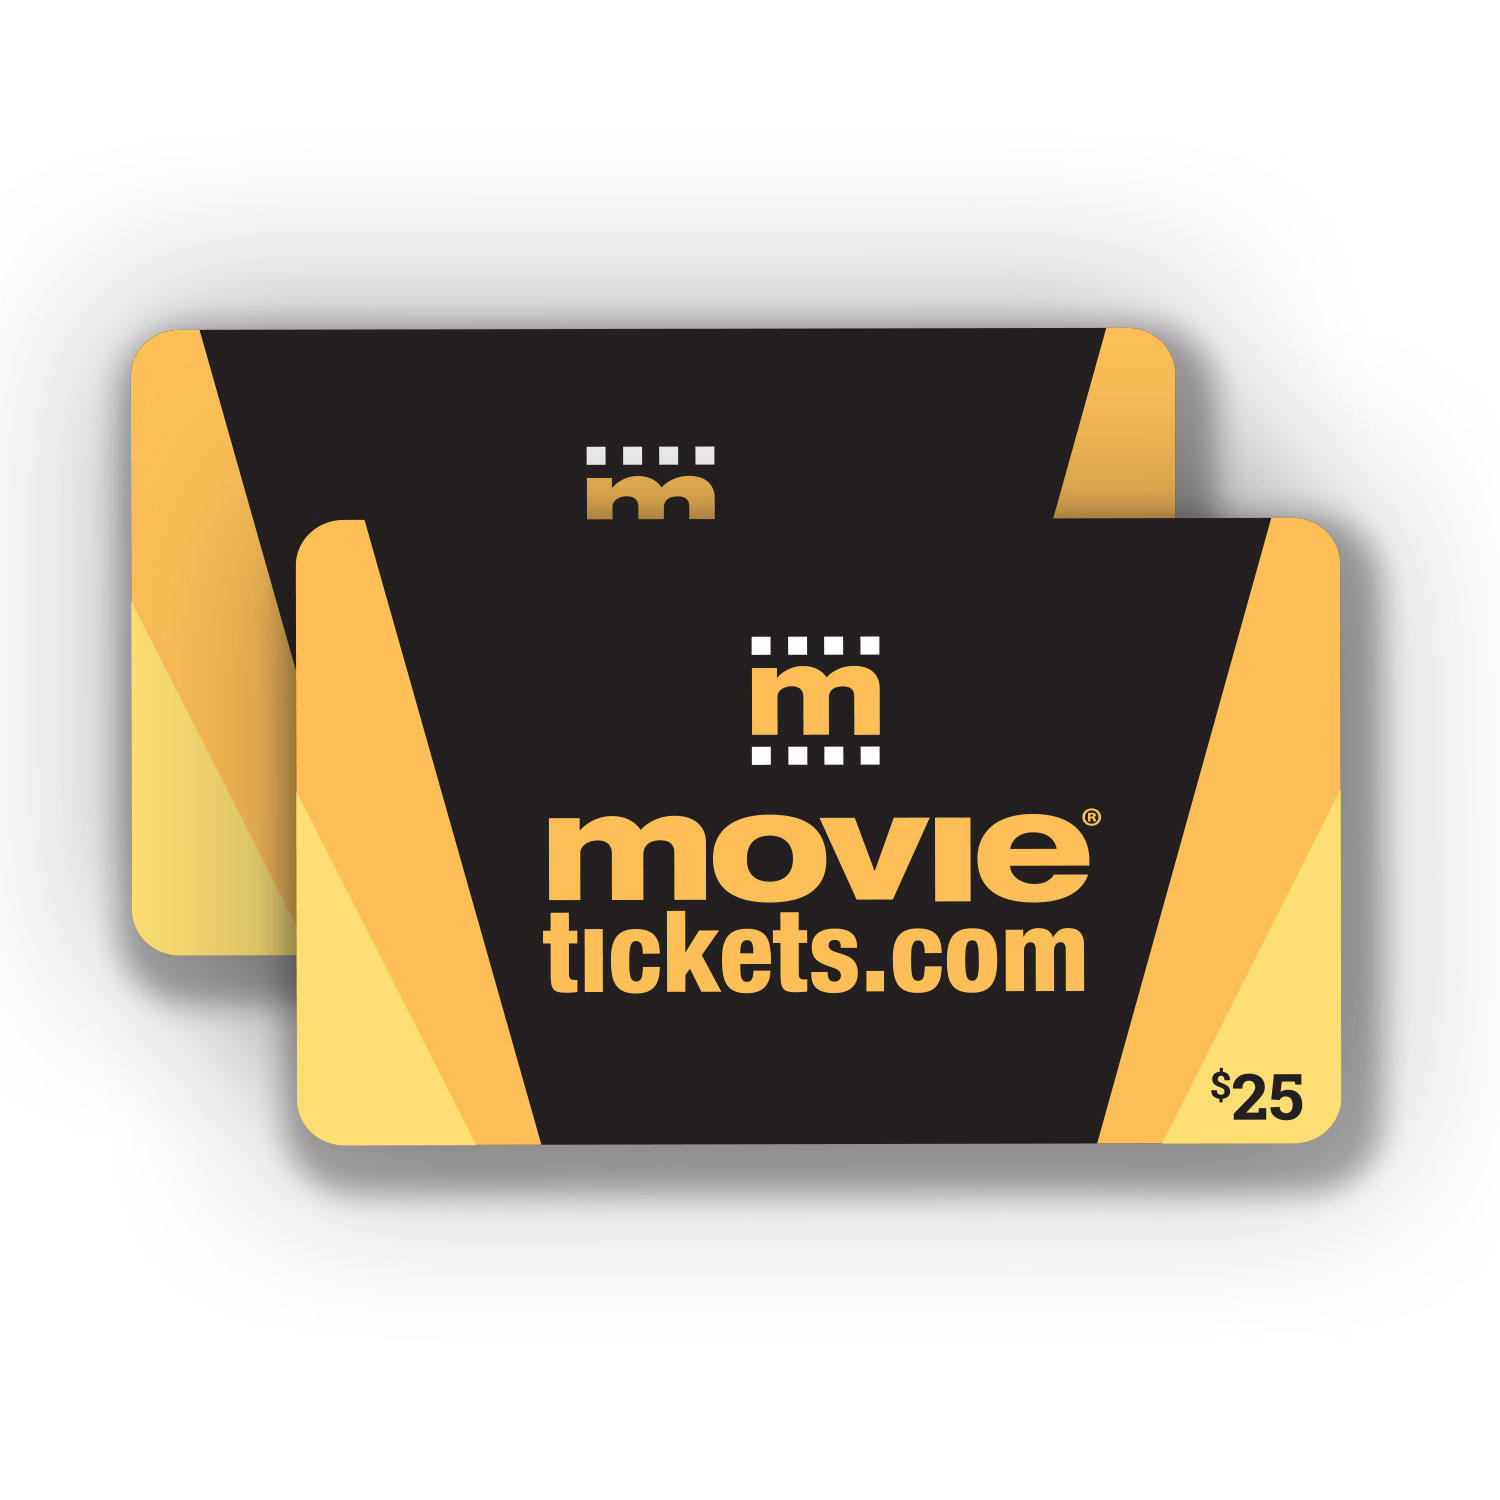 $25 (2 x $25) Movietickets.com Gift Cards